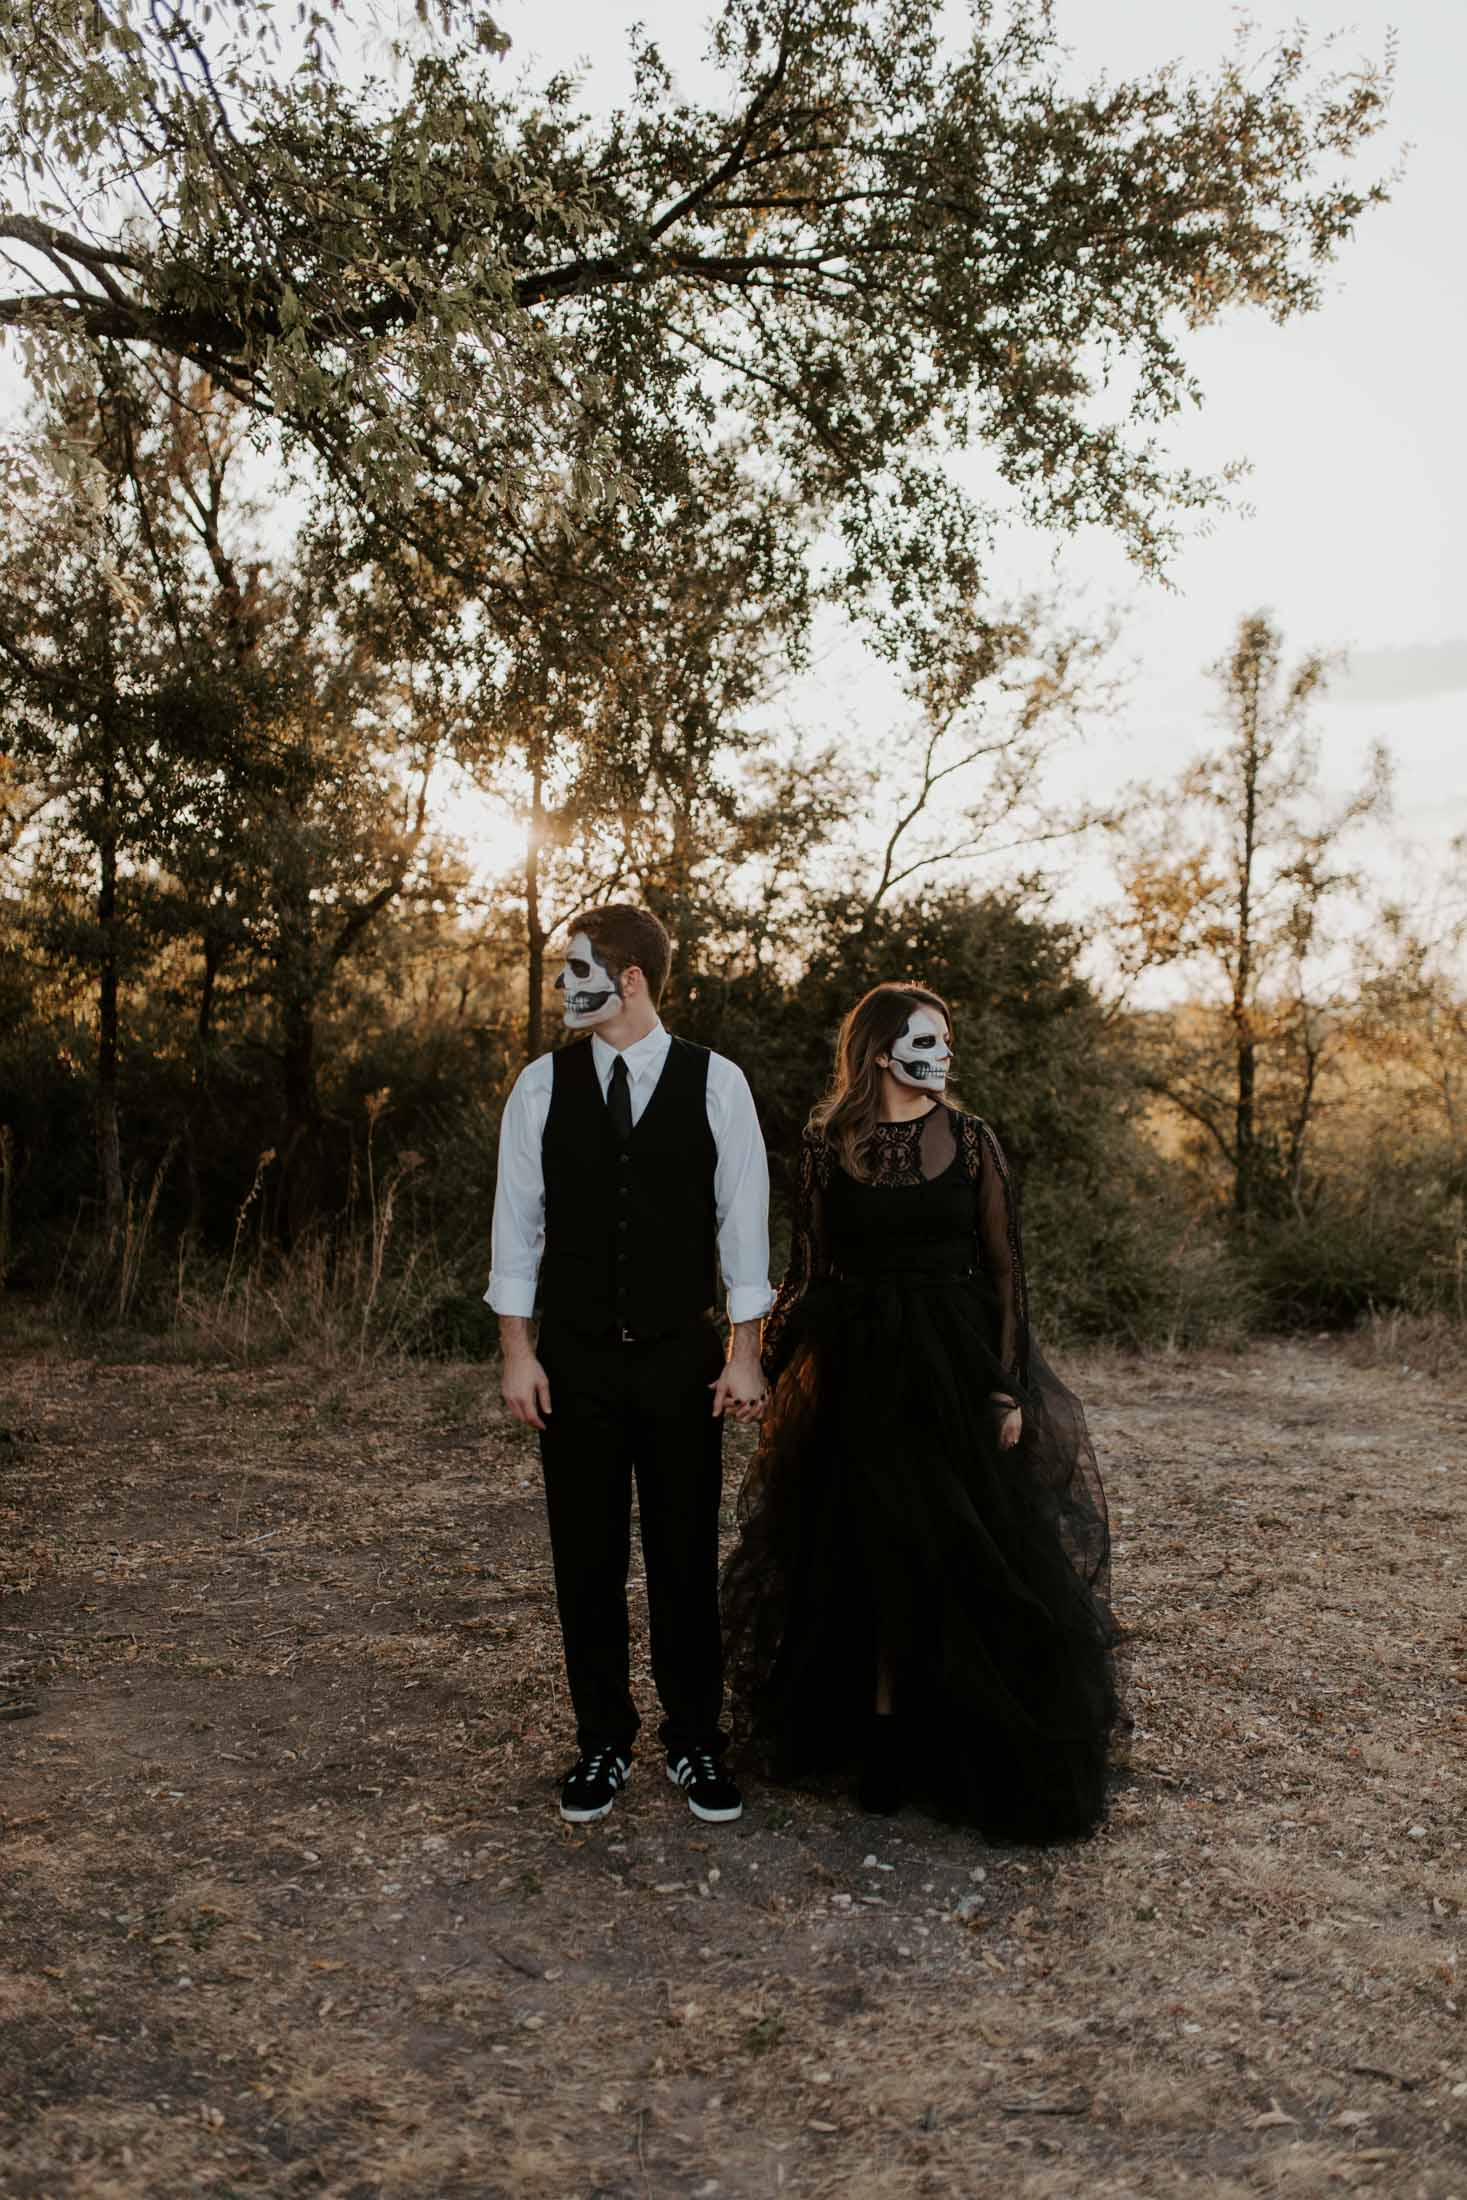 couple dressed in halloween costume takes spooky photo in a park